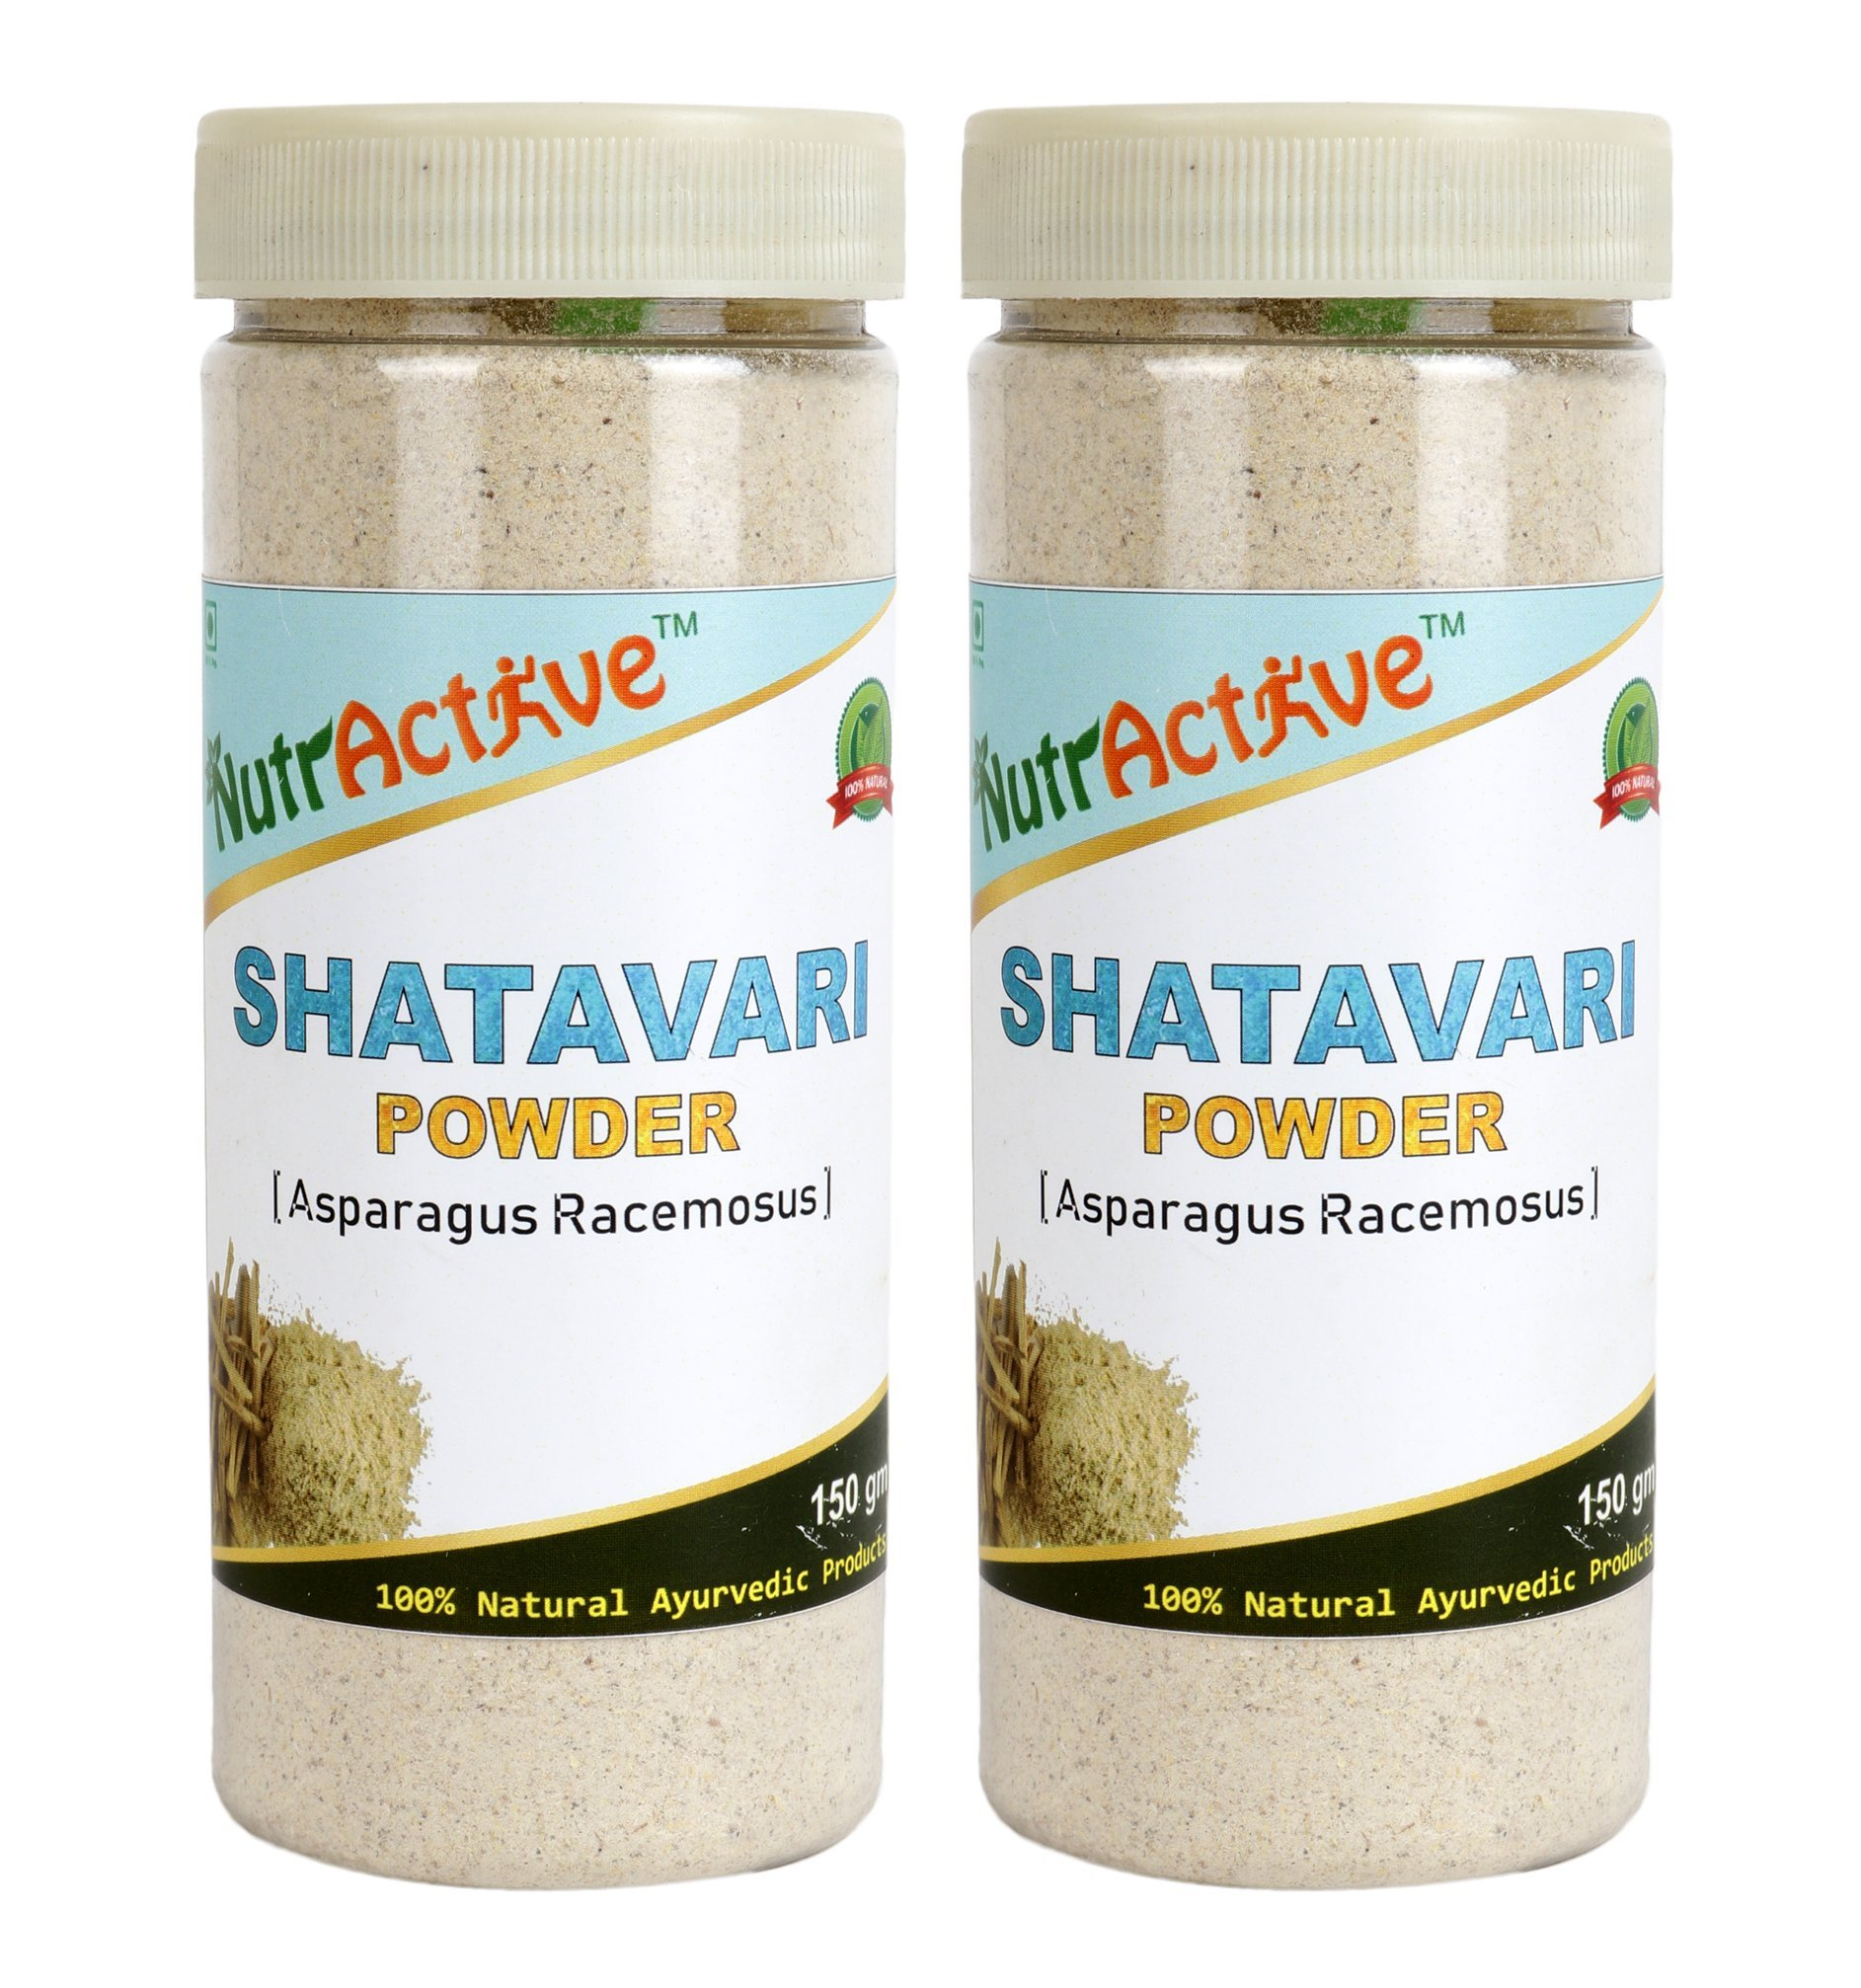 NutrActive Shatavari Powder - 300 gm (Pack of 2)